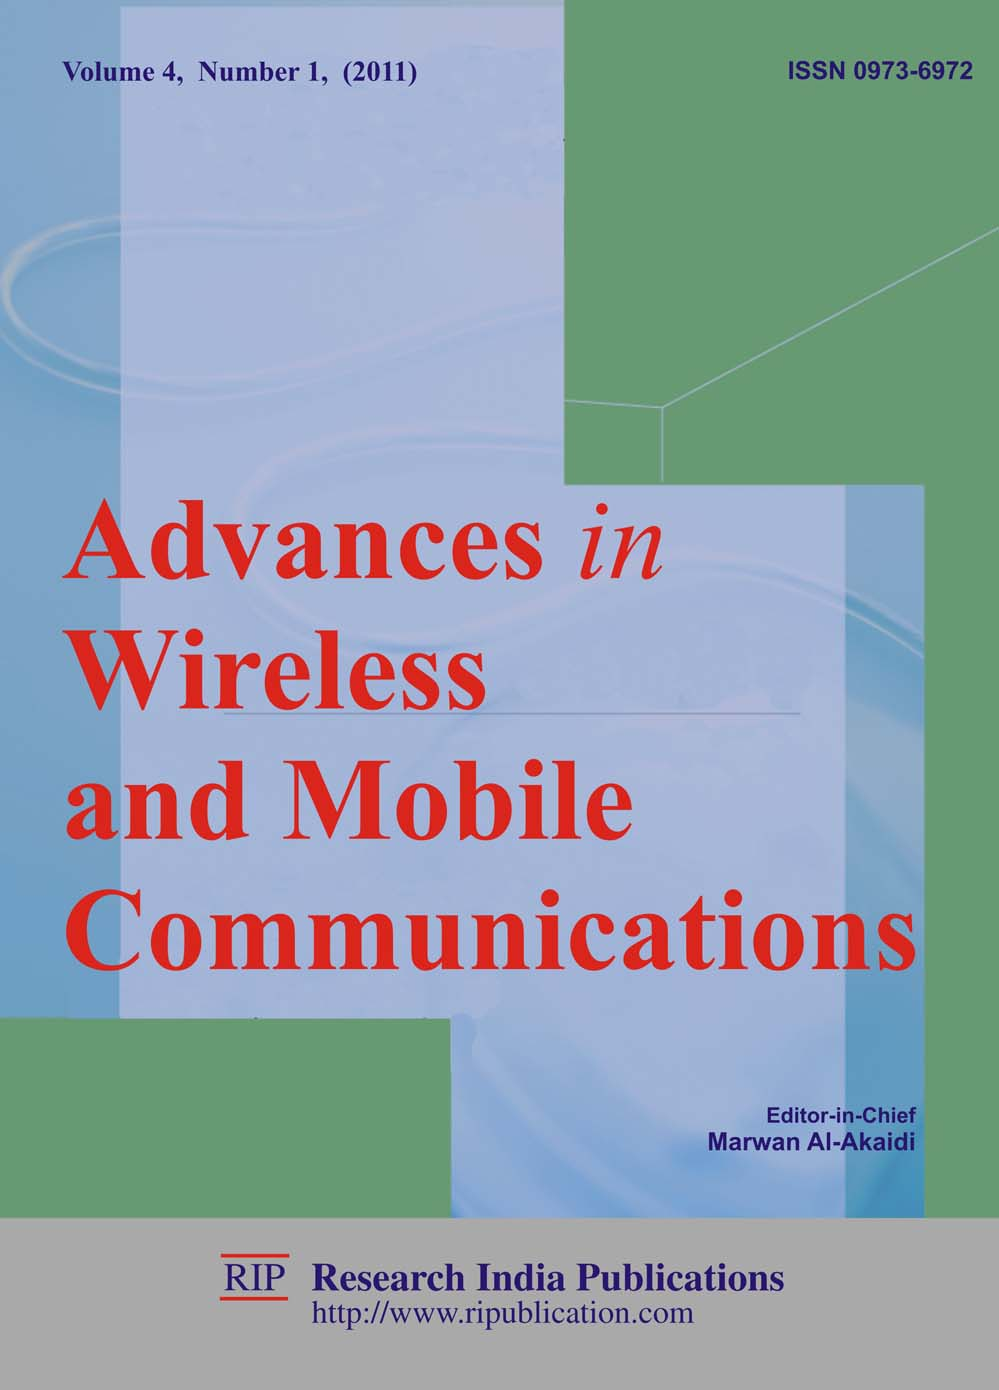 mobile communication research papers Mobile communicationmobile communications principleseach mobile uses a separate, temporary radio cha  bile uses a separate, temporary radio channel to talk to the cell site the cell site talks to many mobiles at once, using one channel per mobile channels use a pair of frequencies for.